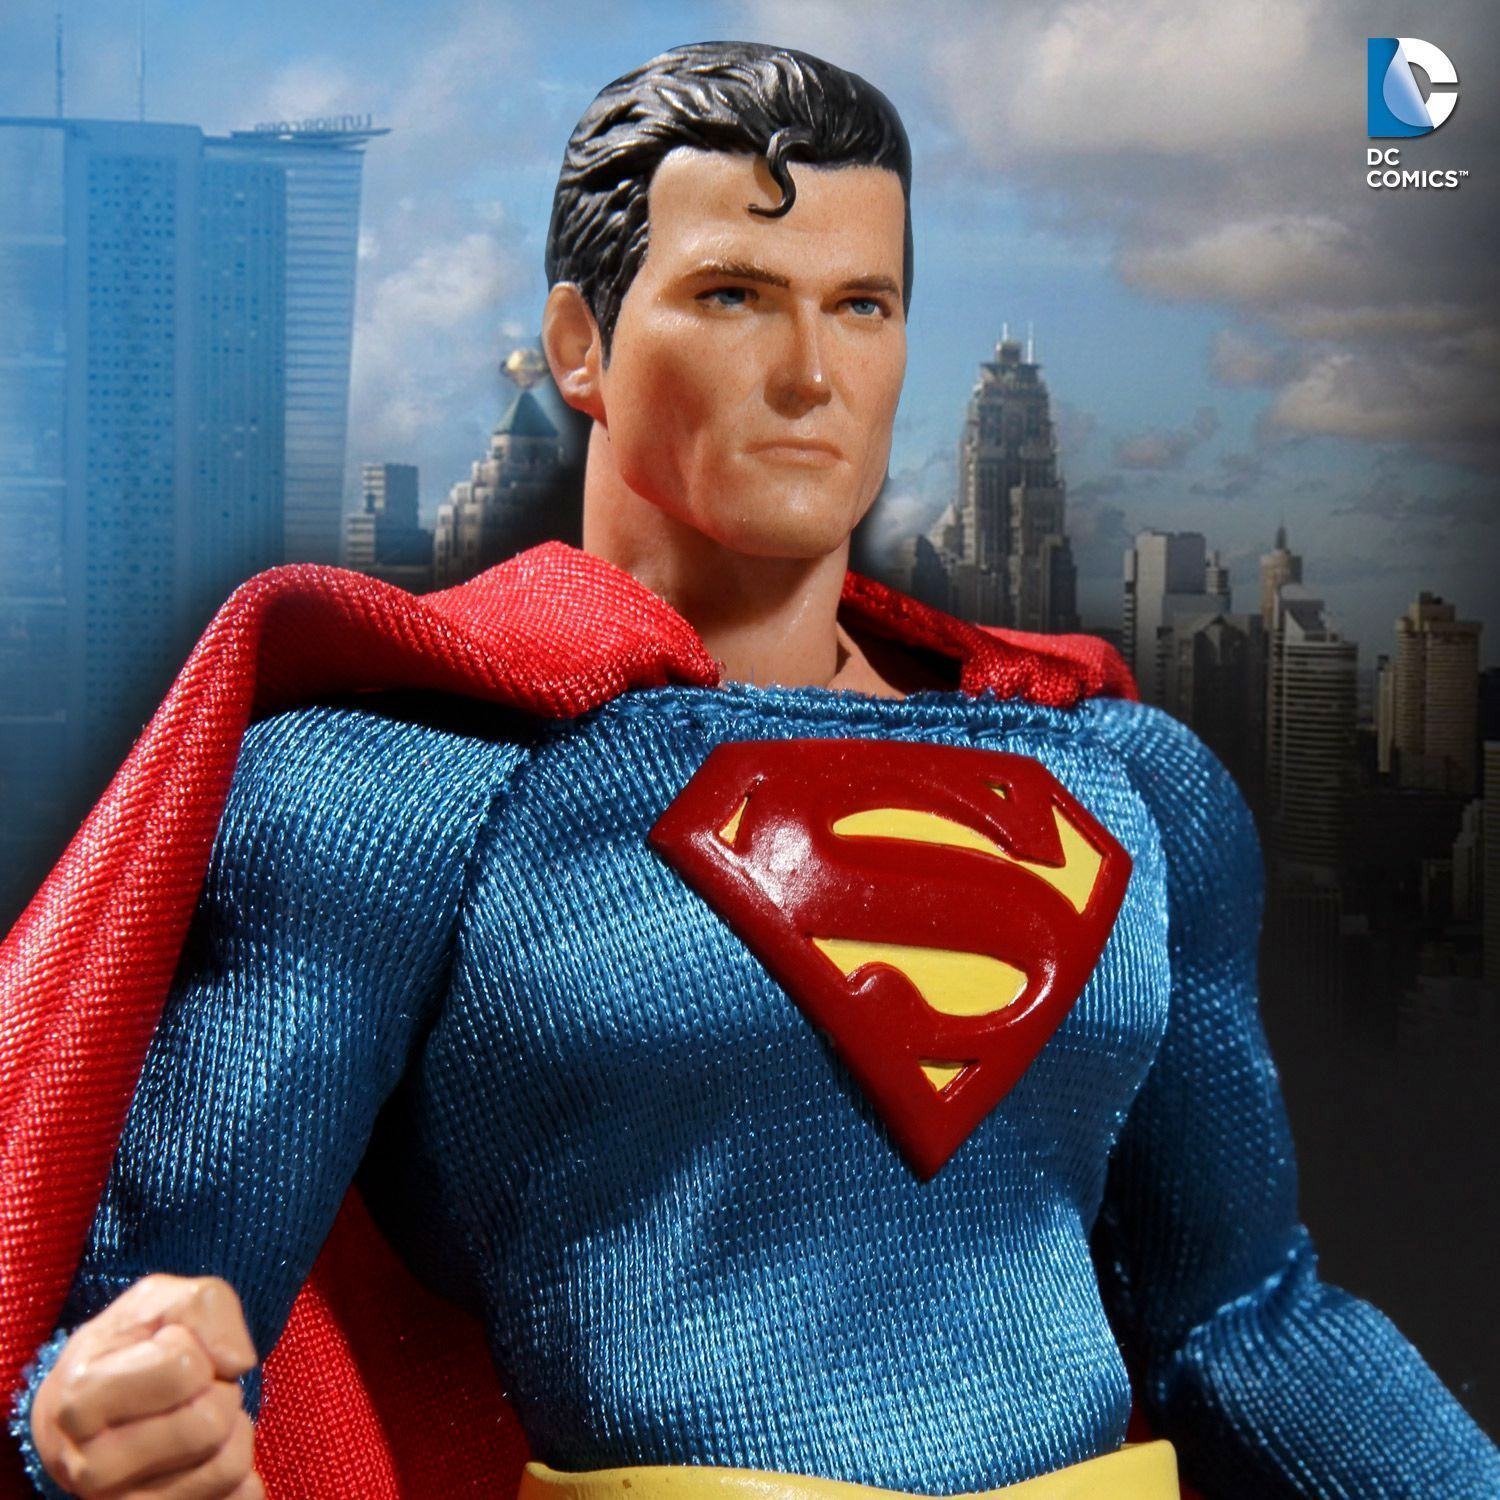 Superman-One-12-Collective-Action-Figure-04